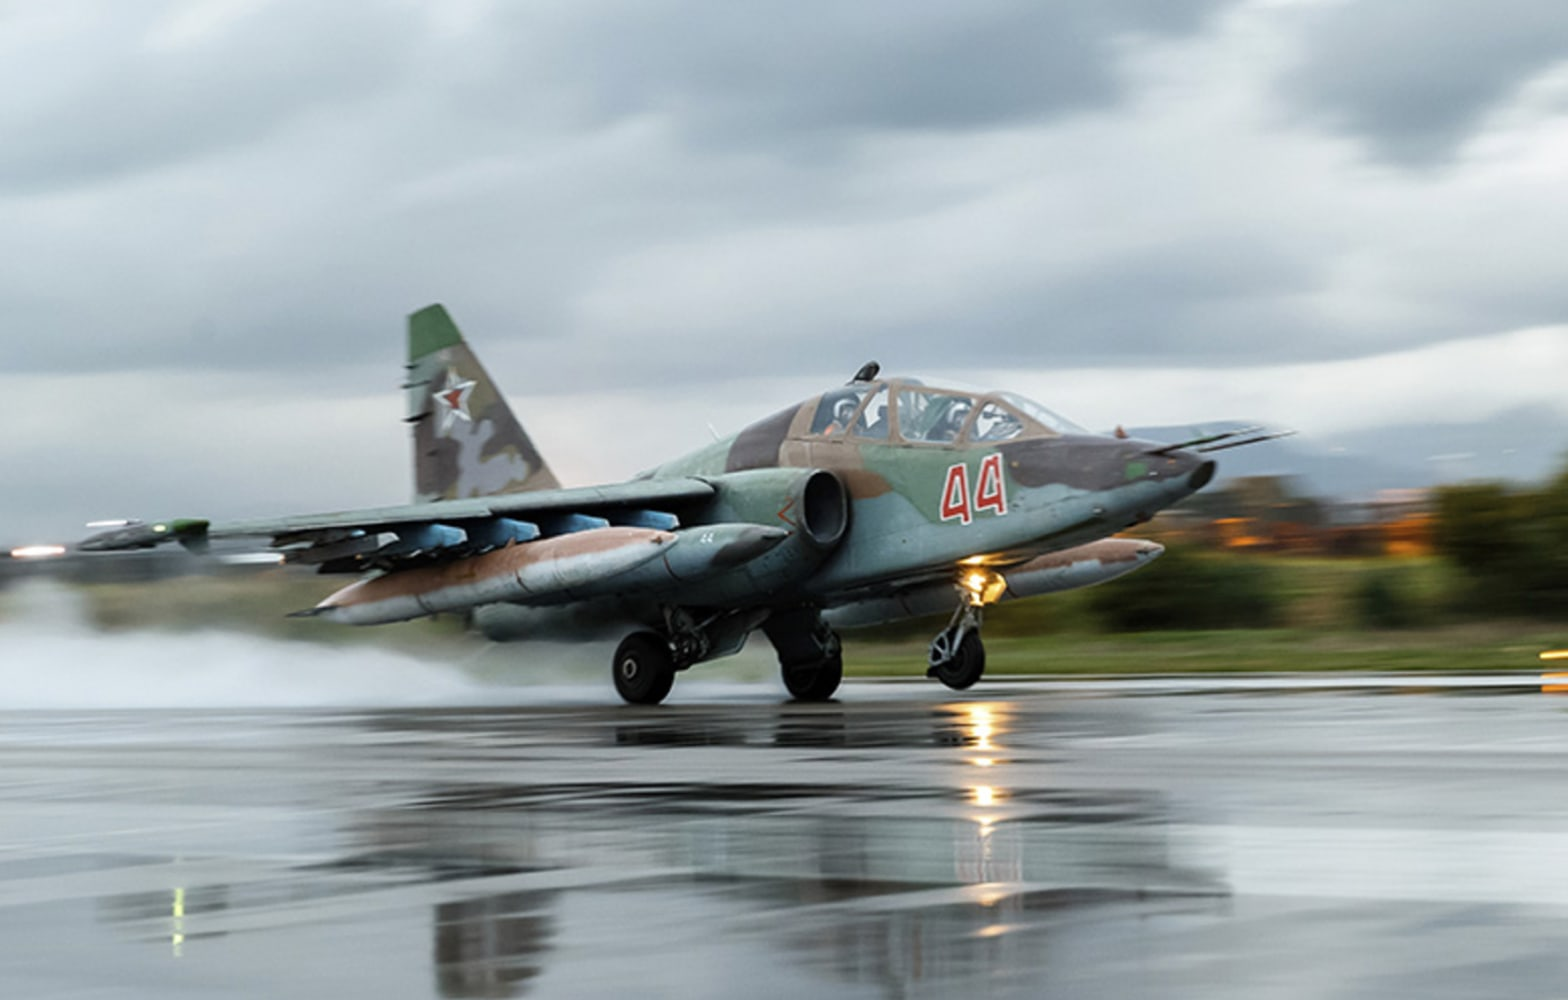 https://media4.s-nbcnews.com/j/newscms/2017_50/2261766/171214-russian-su-25-se-339p_2f8956a2af88a8be14de637878d883c5.nbcnews-ux-2880-1000.jpg